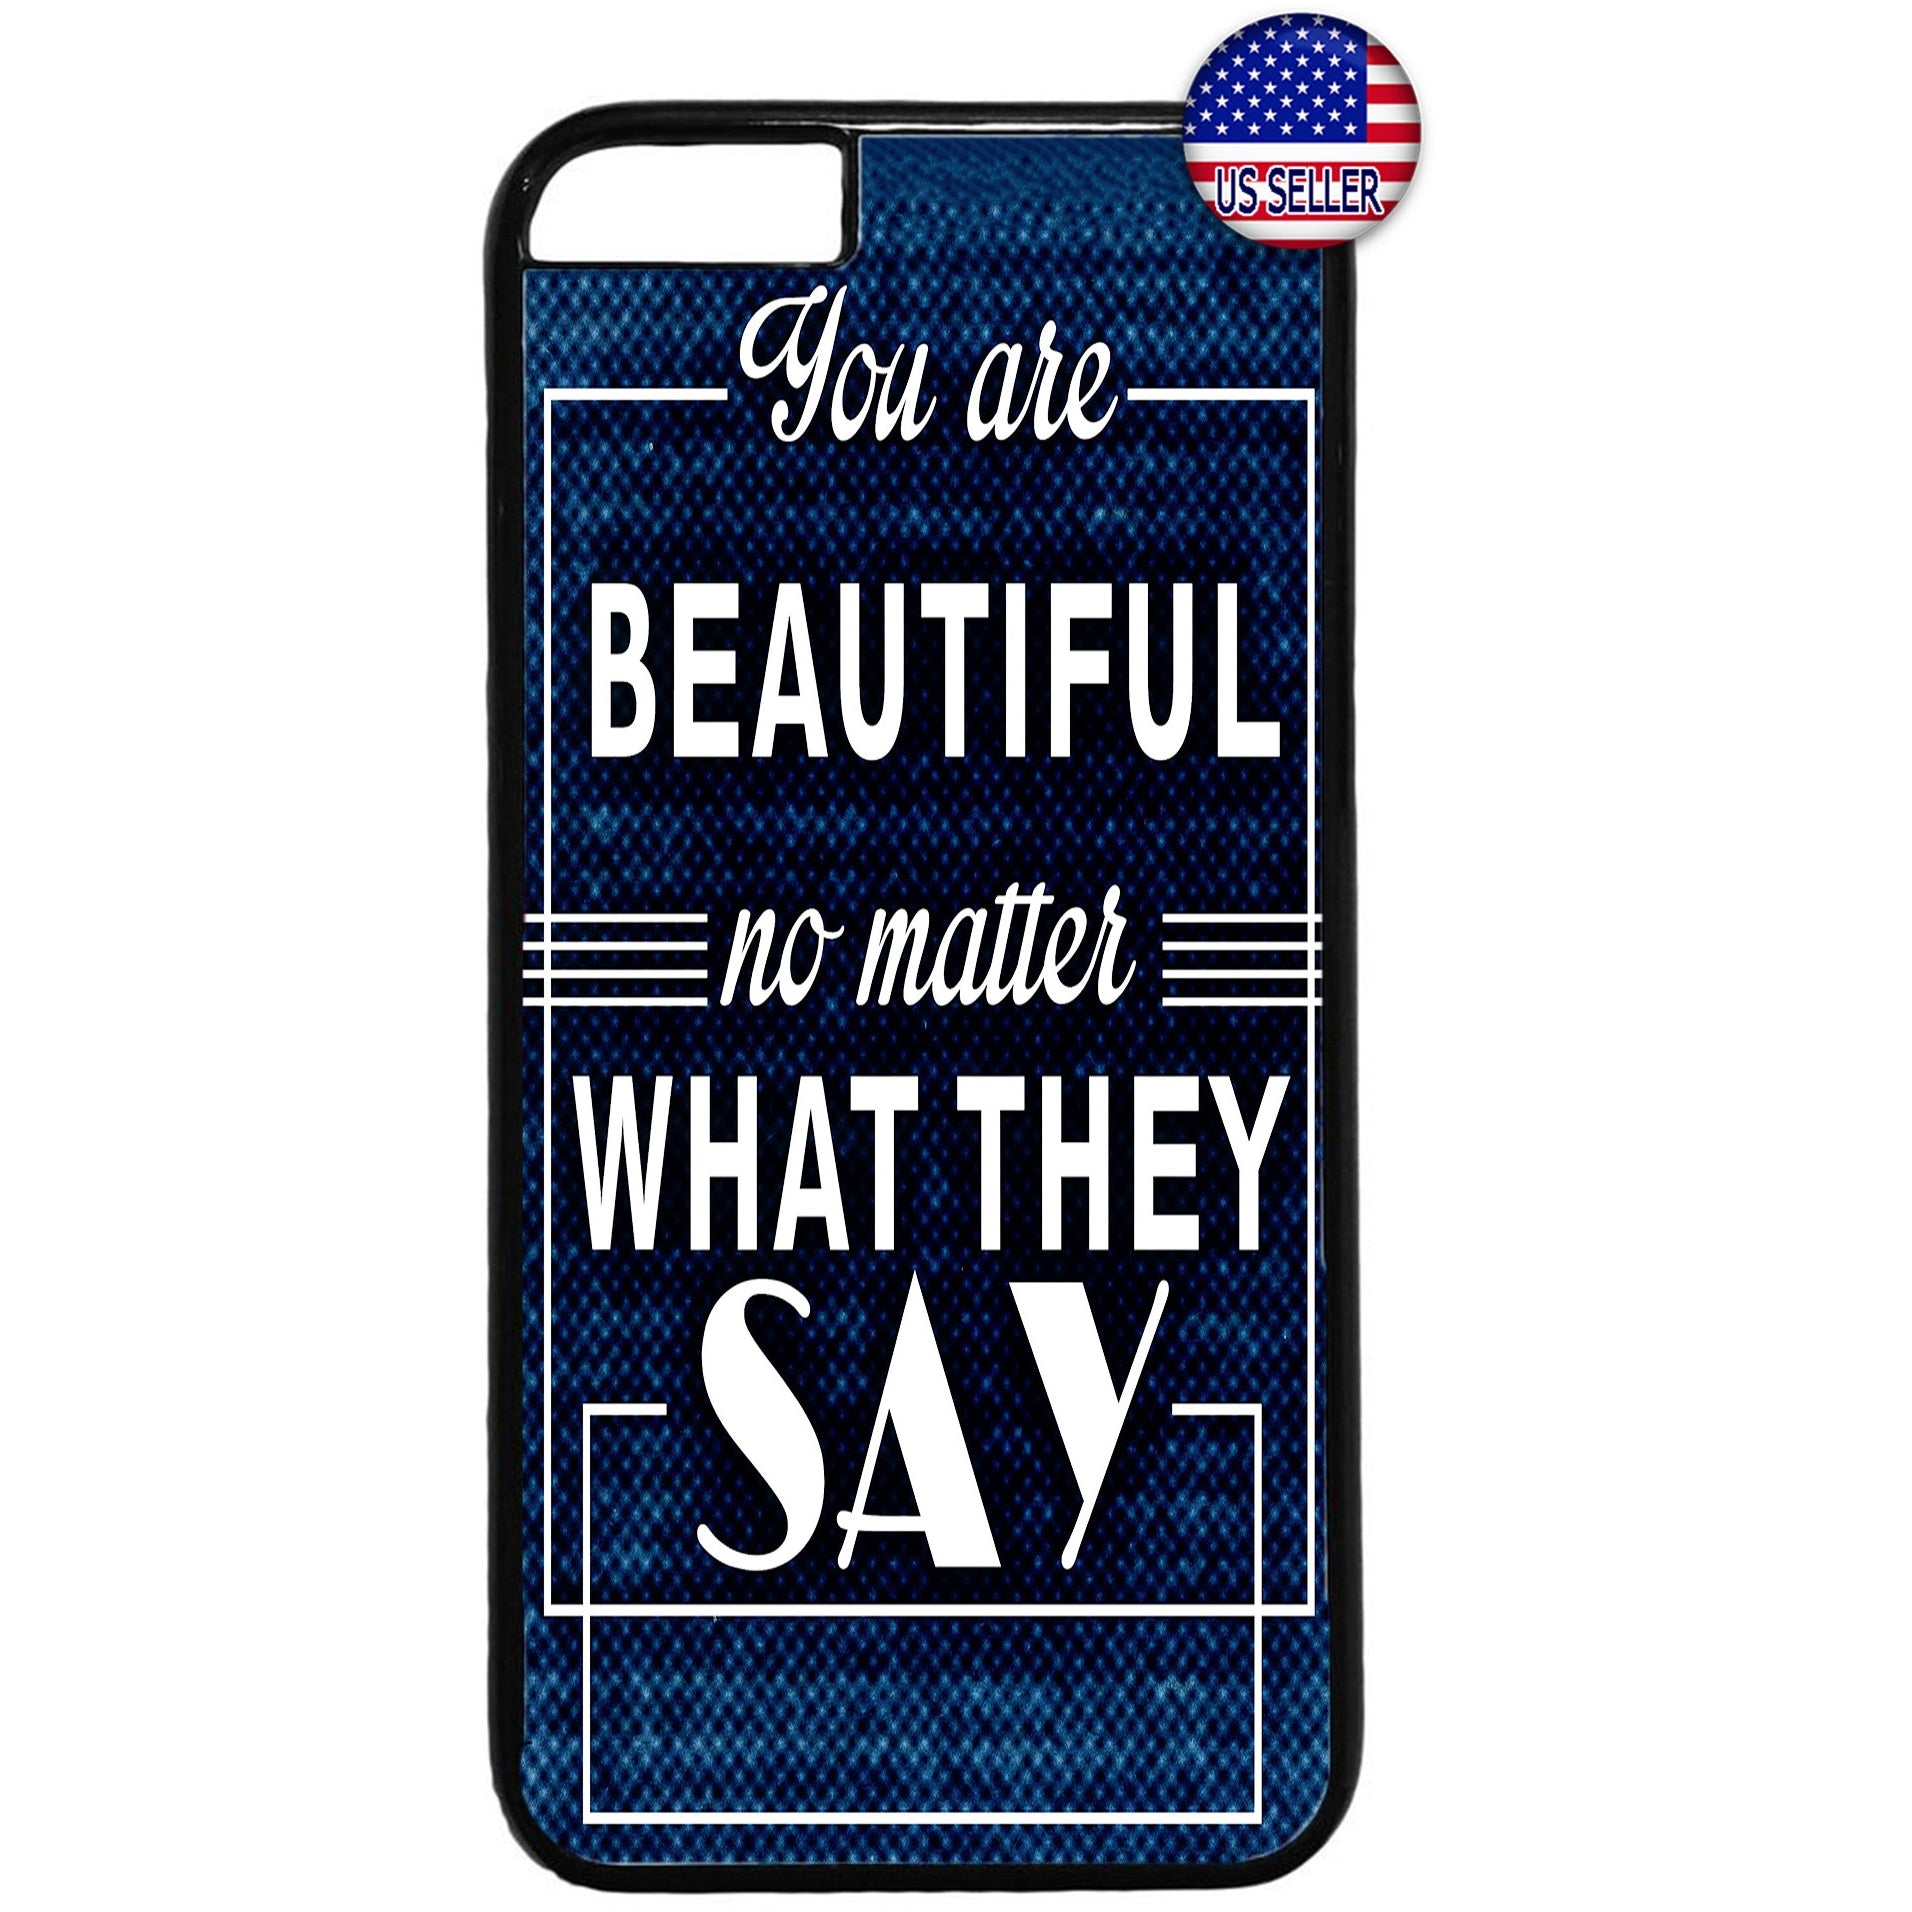 You are Beautiful Quote Rubber Case Cover For Iphone